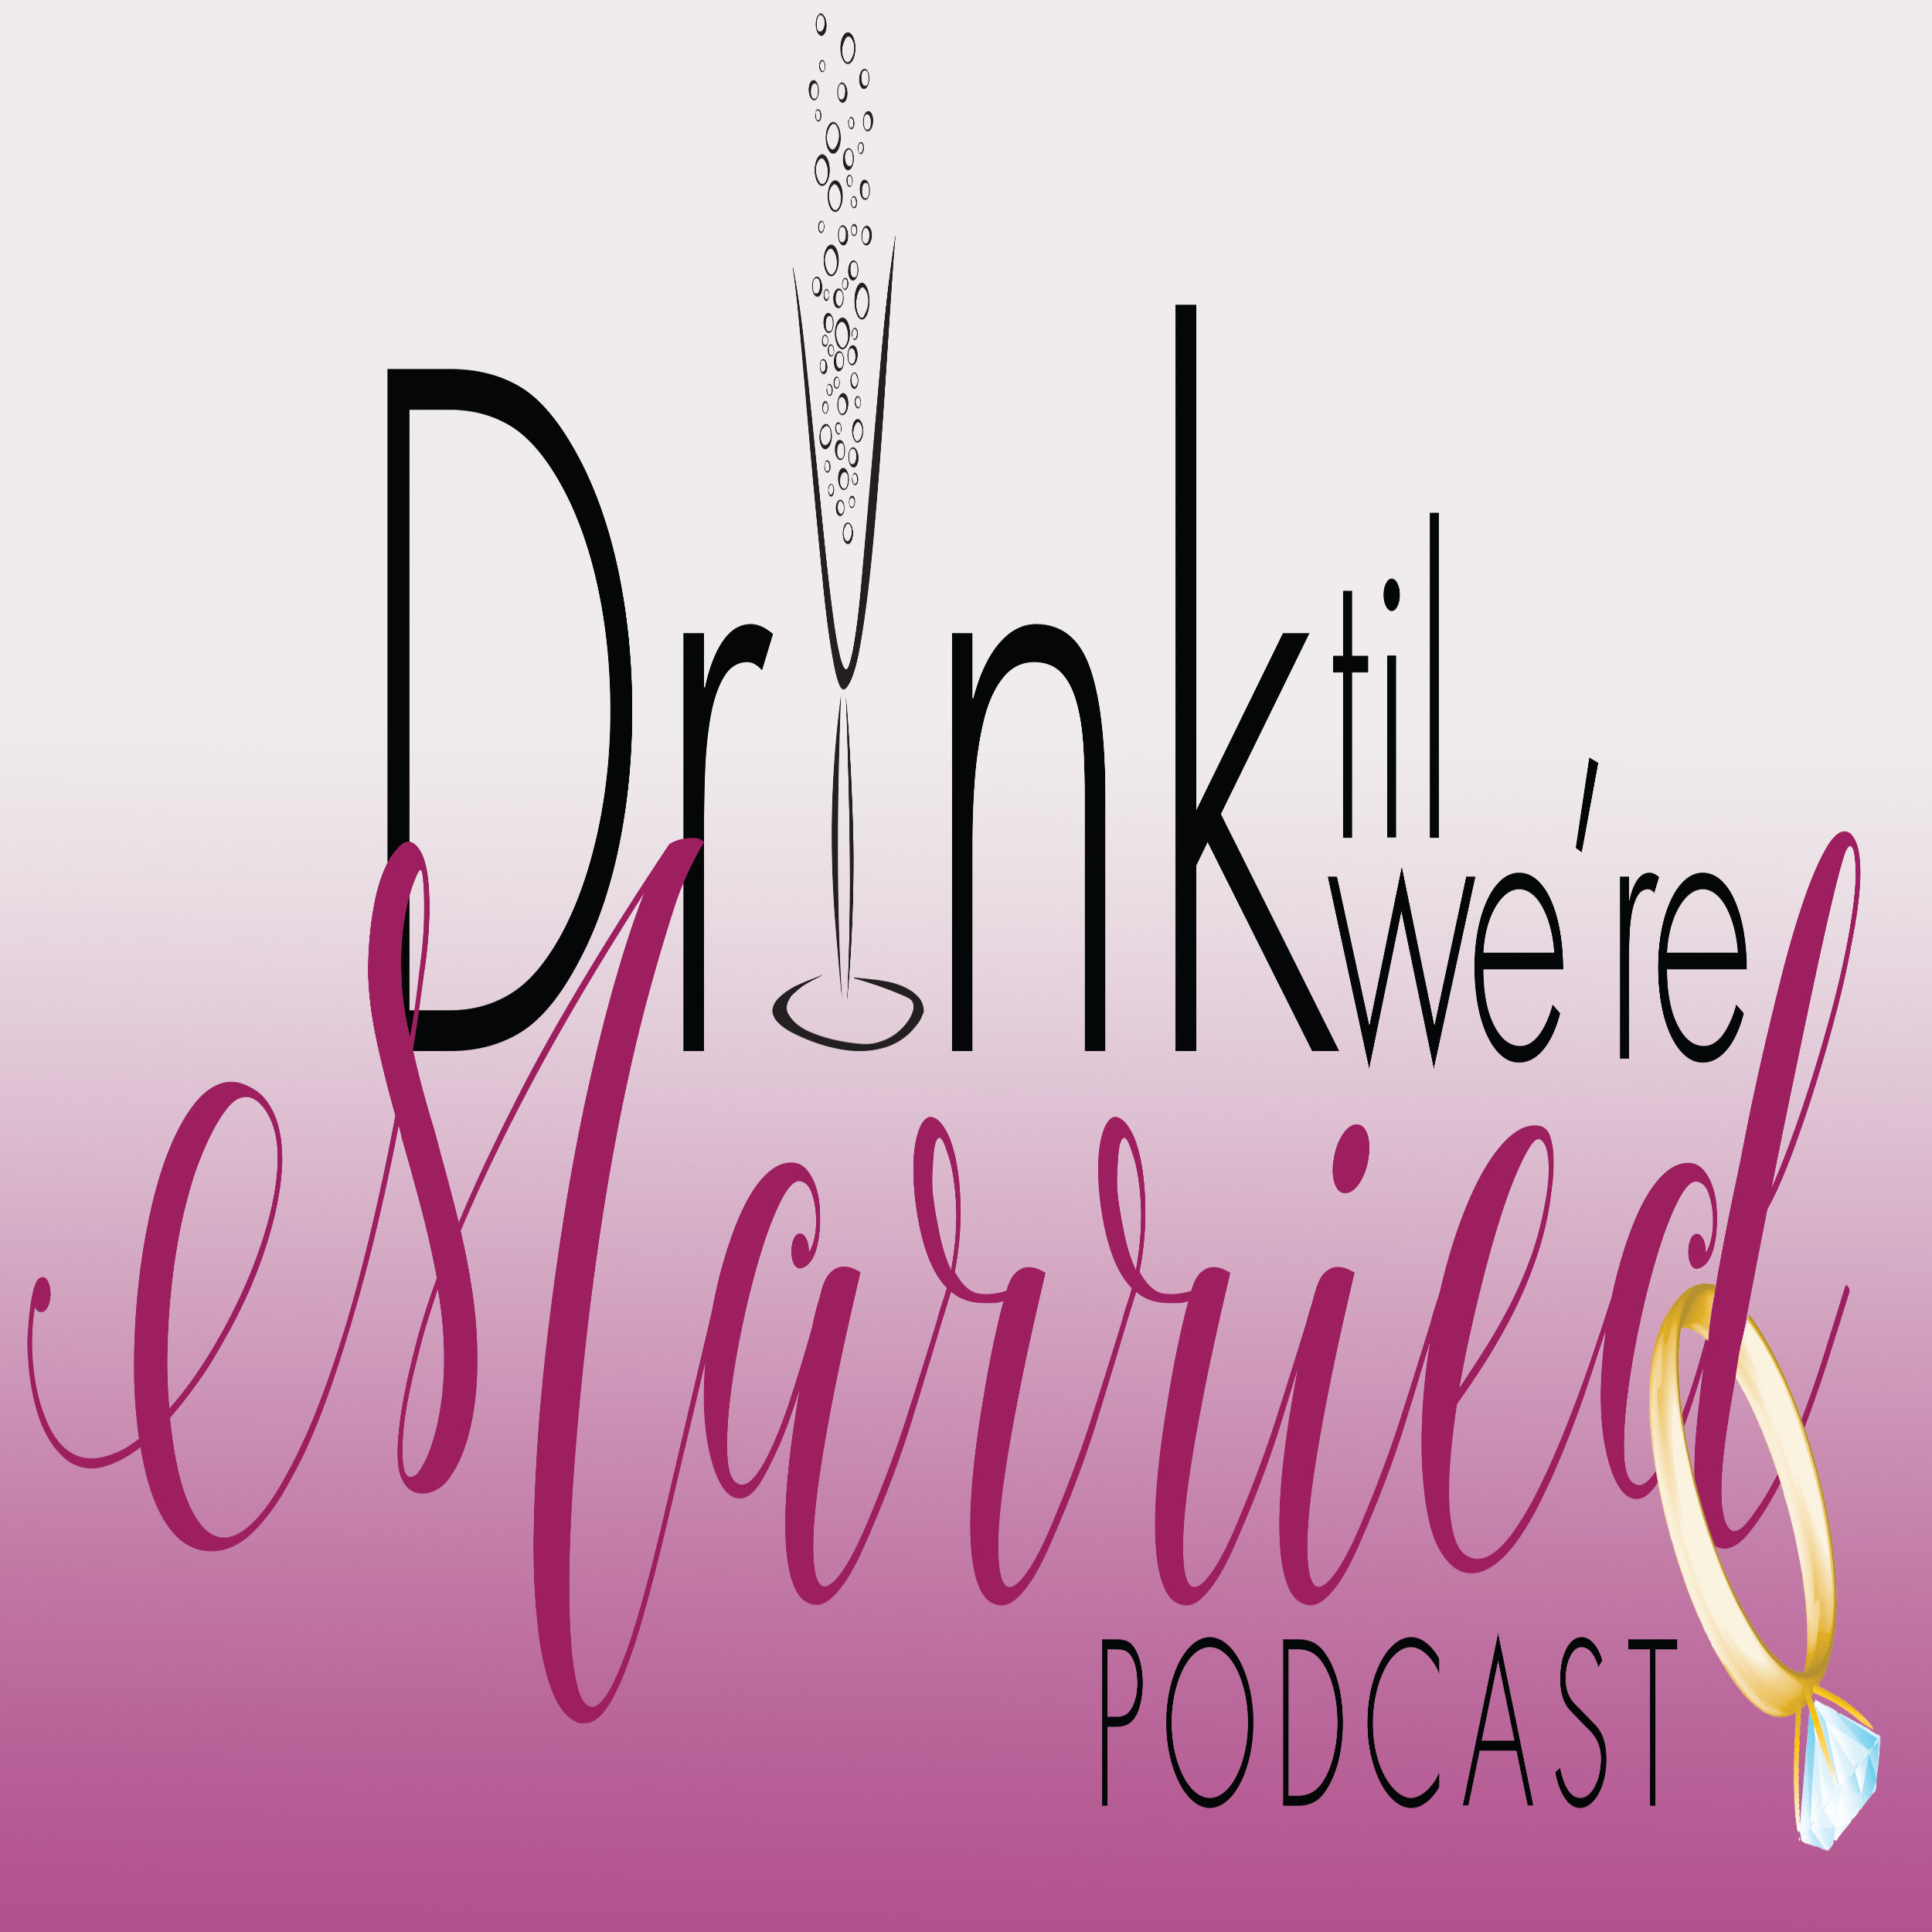 Drink Til We're Married Podcast